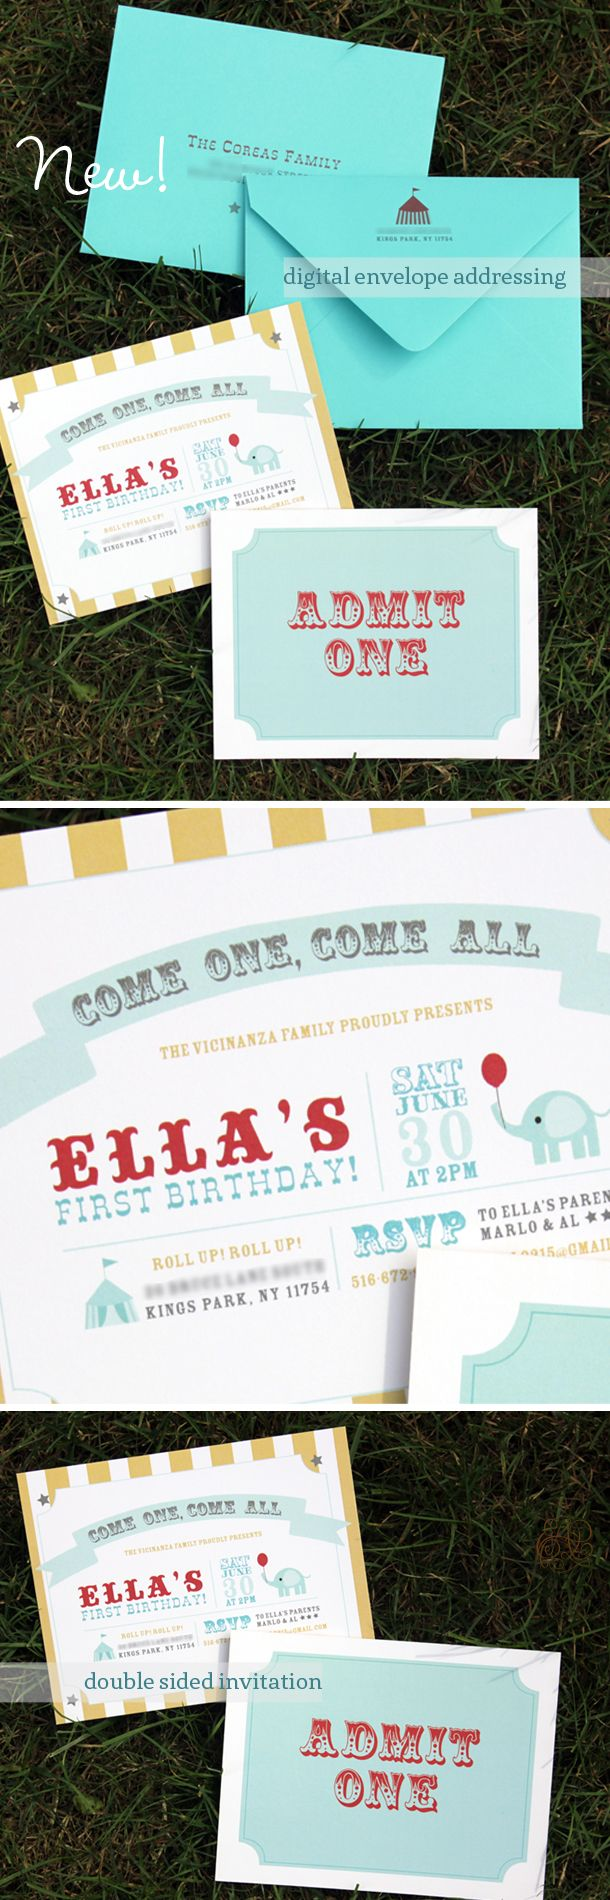 carnival themed birthday invitation with digital envelope addressing